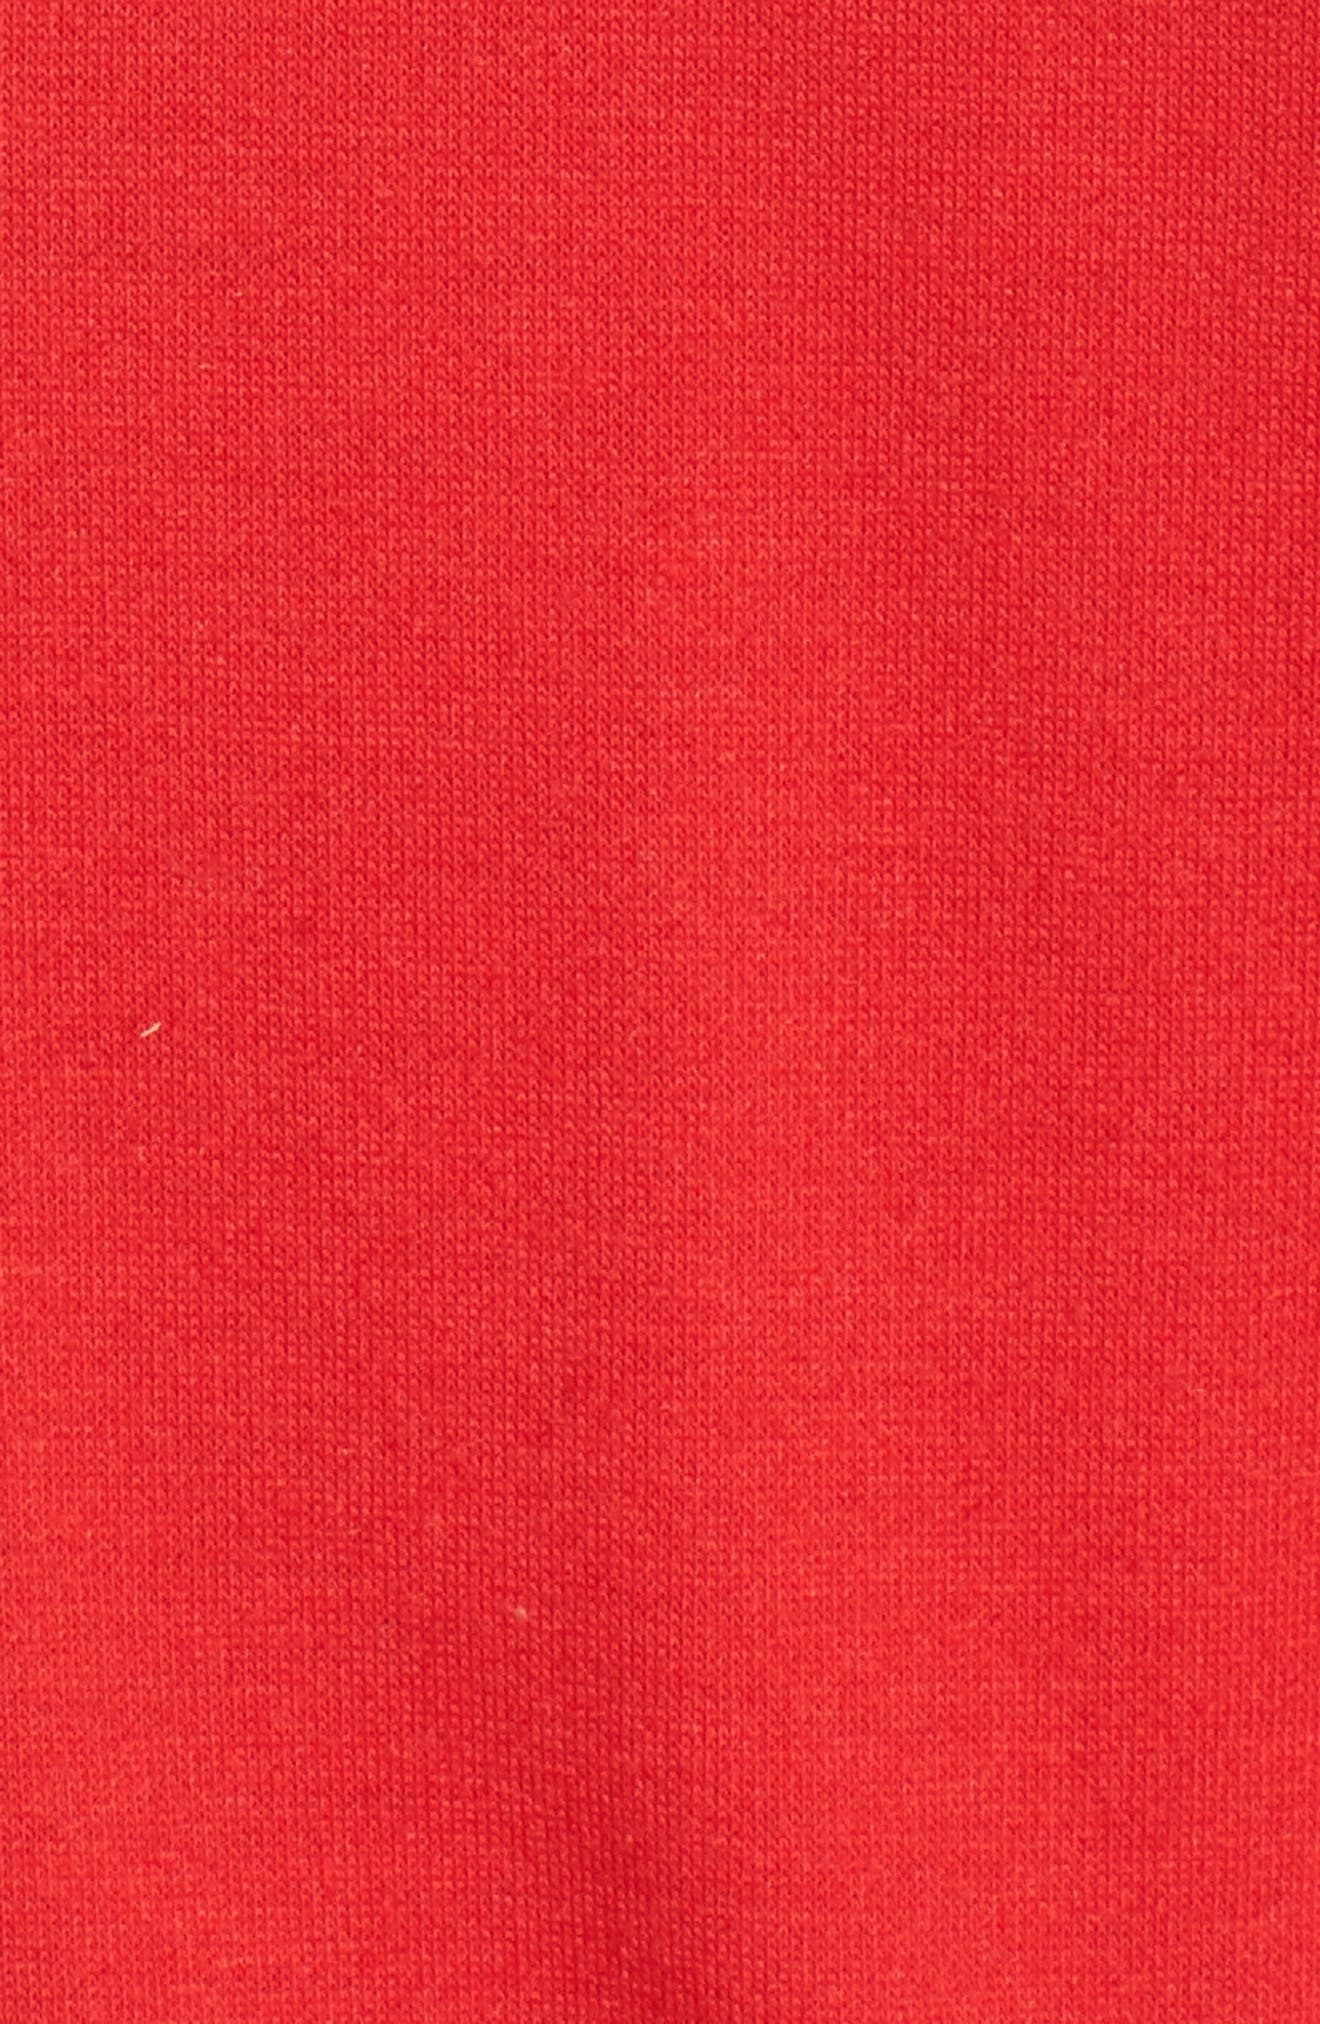 Oh Snap Sweatshirt,                             Alternate thumbnail 5, color,                             Red